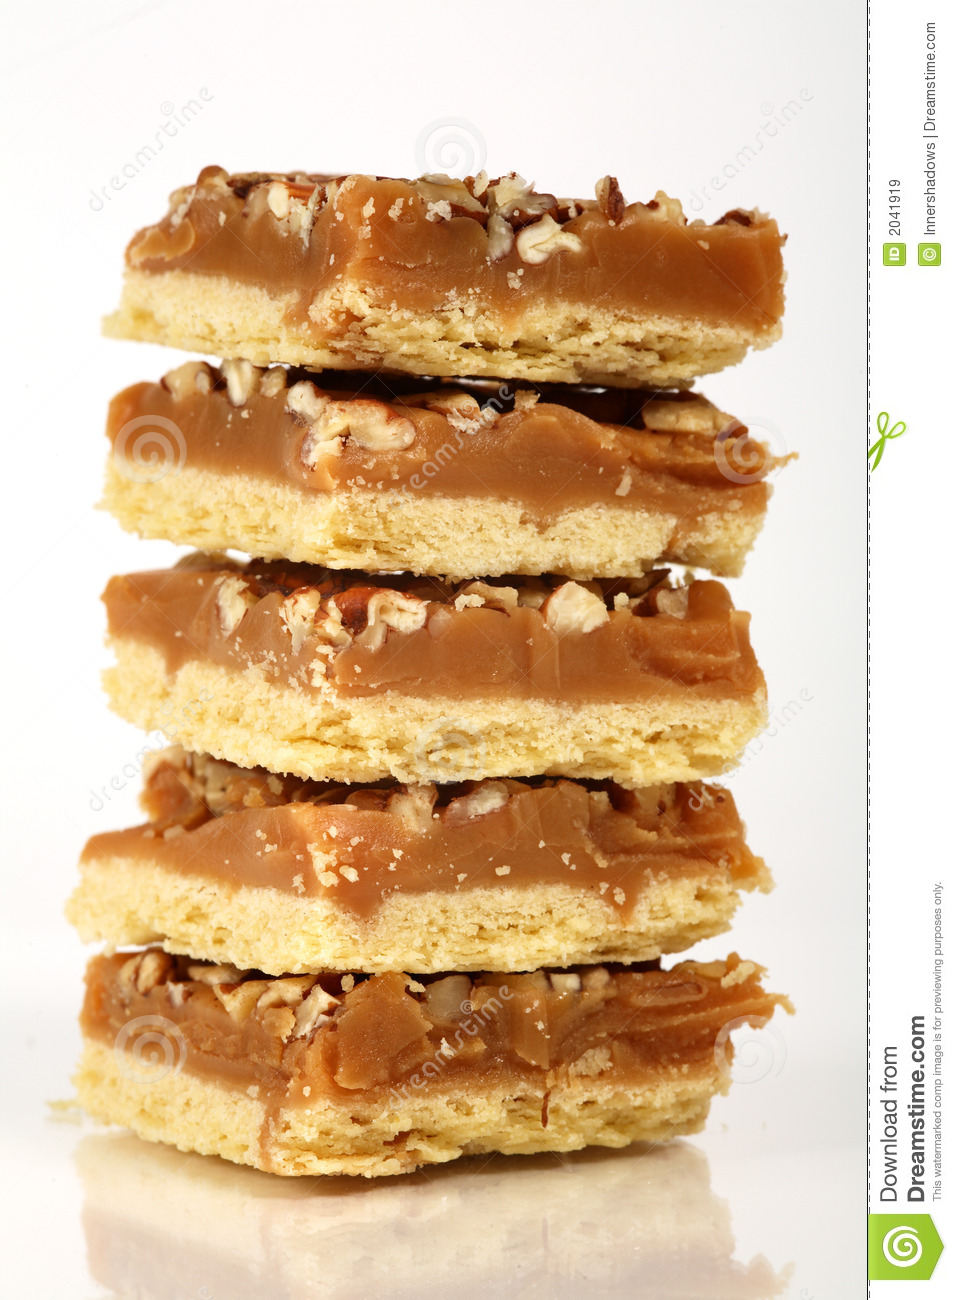 Pecan Caramel Shortbread Cakes Royalty Free Stock Images ...